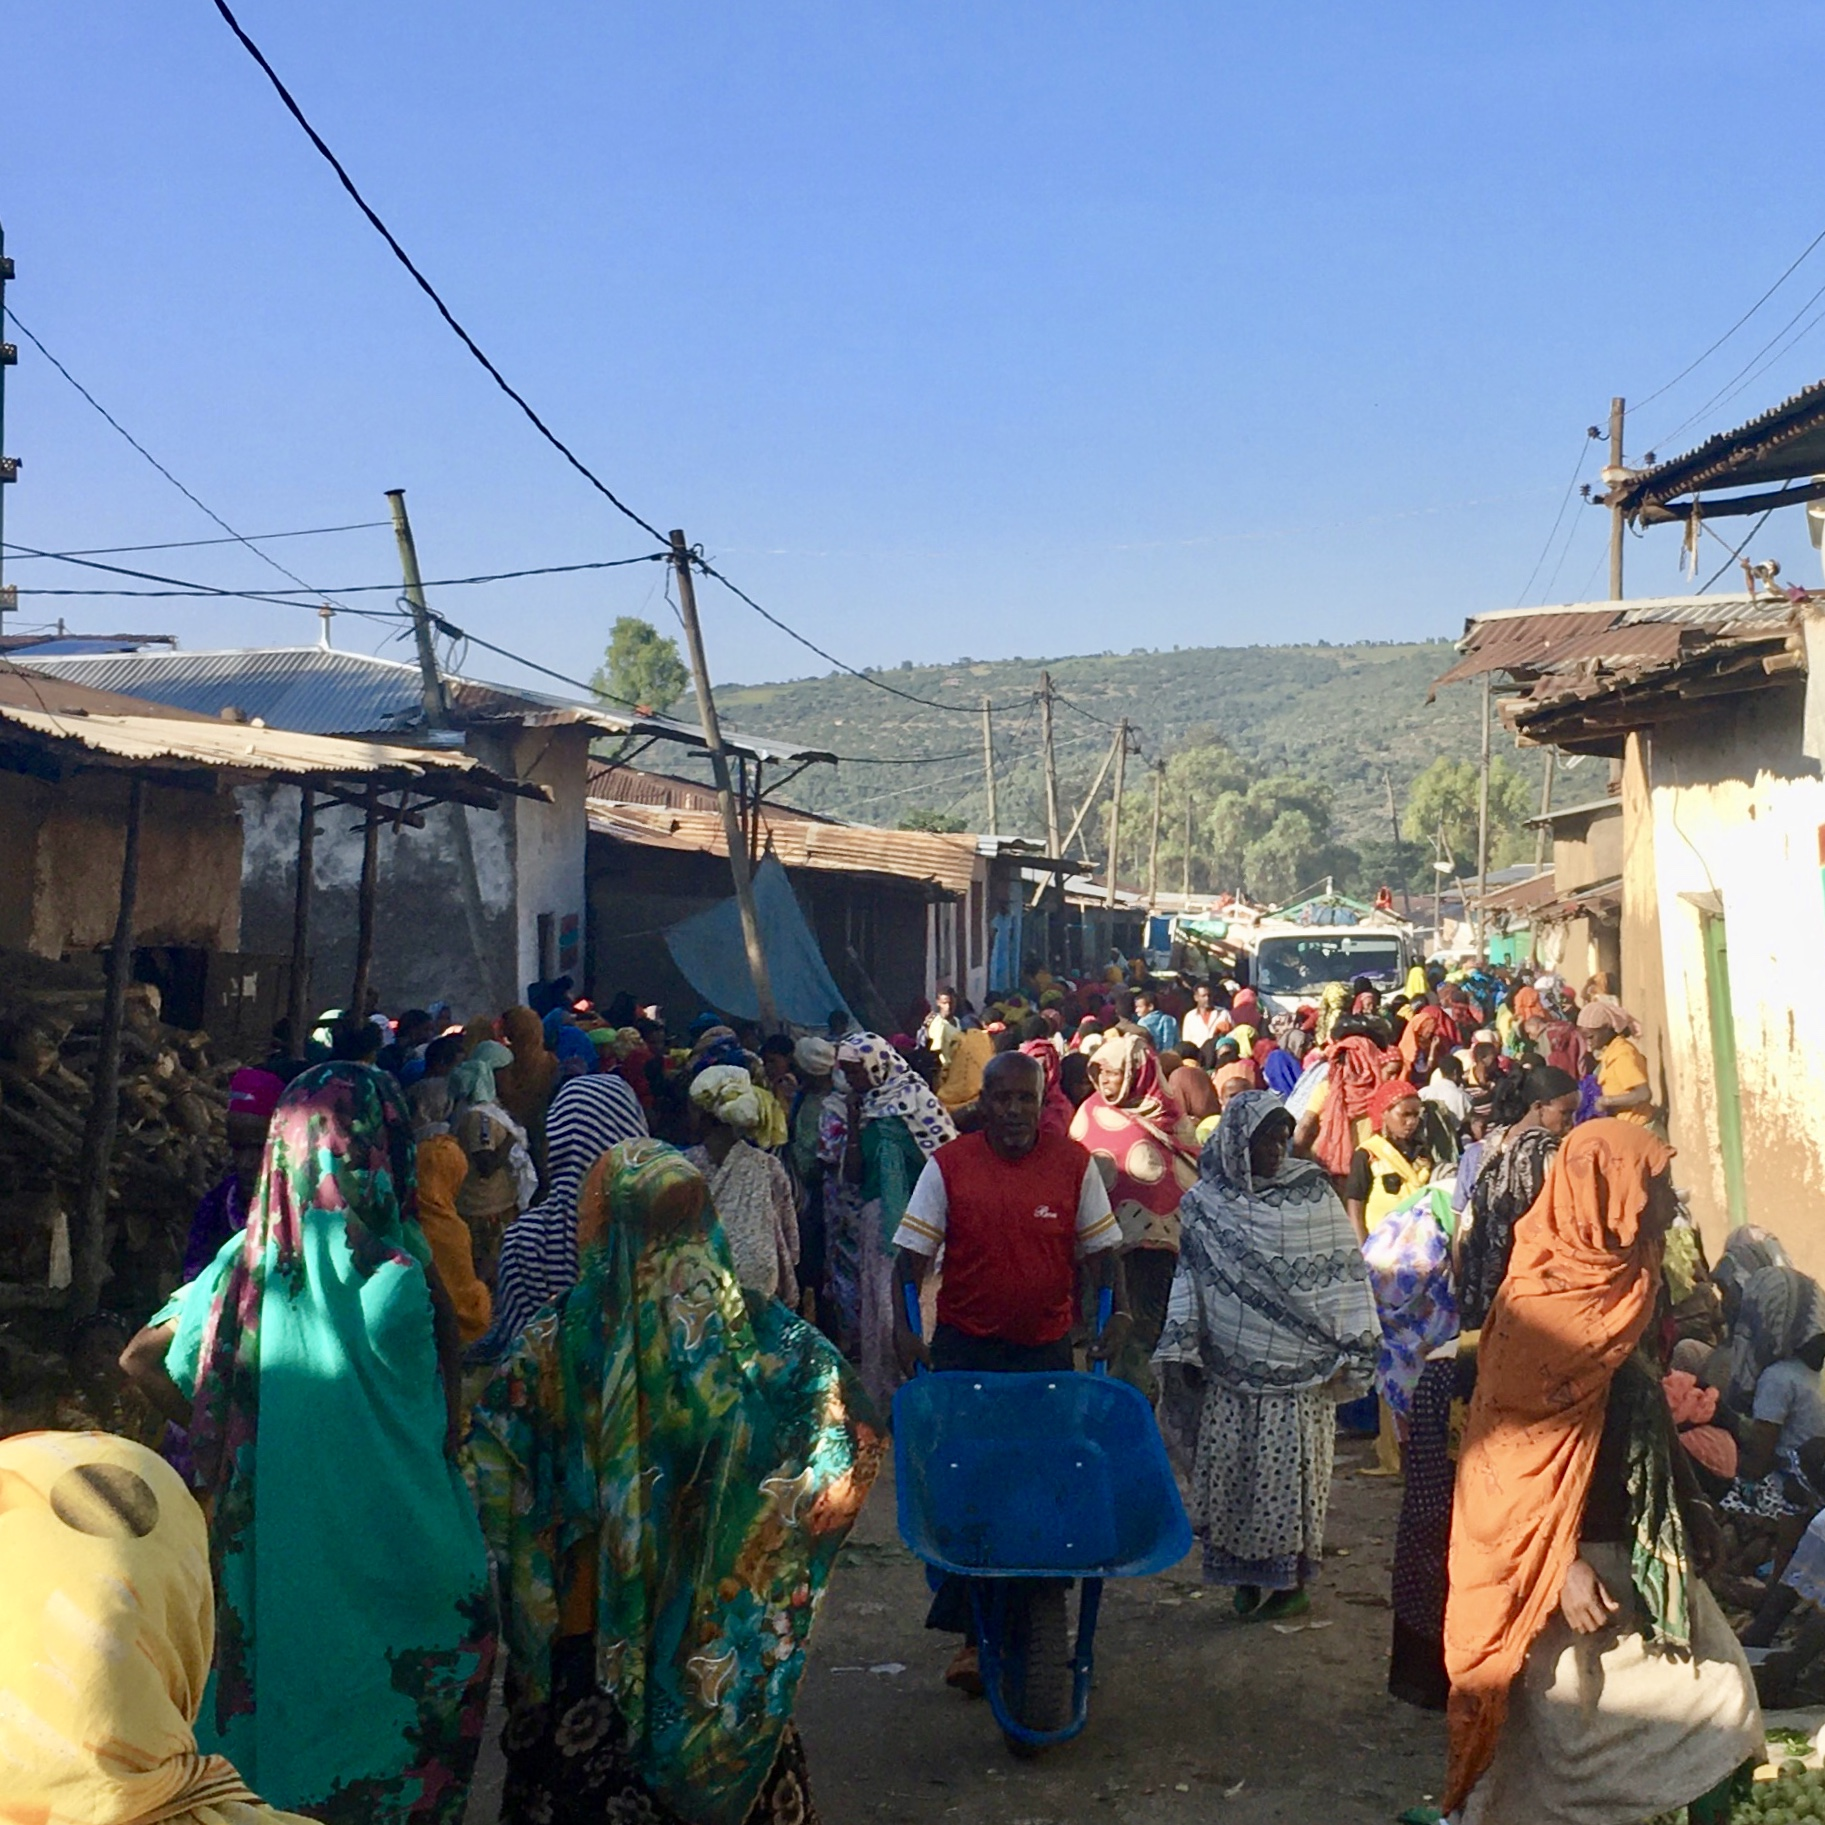 Market day in Weter, East Hararghe, Ethiopia